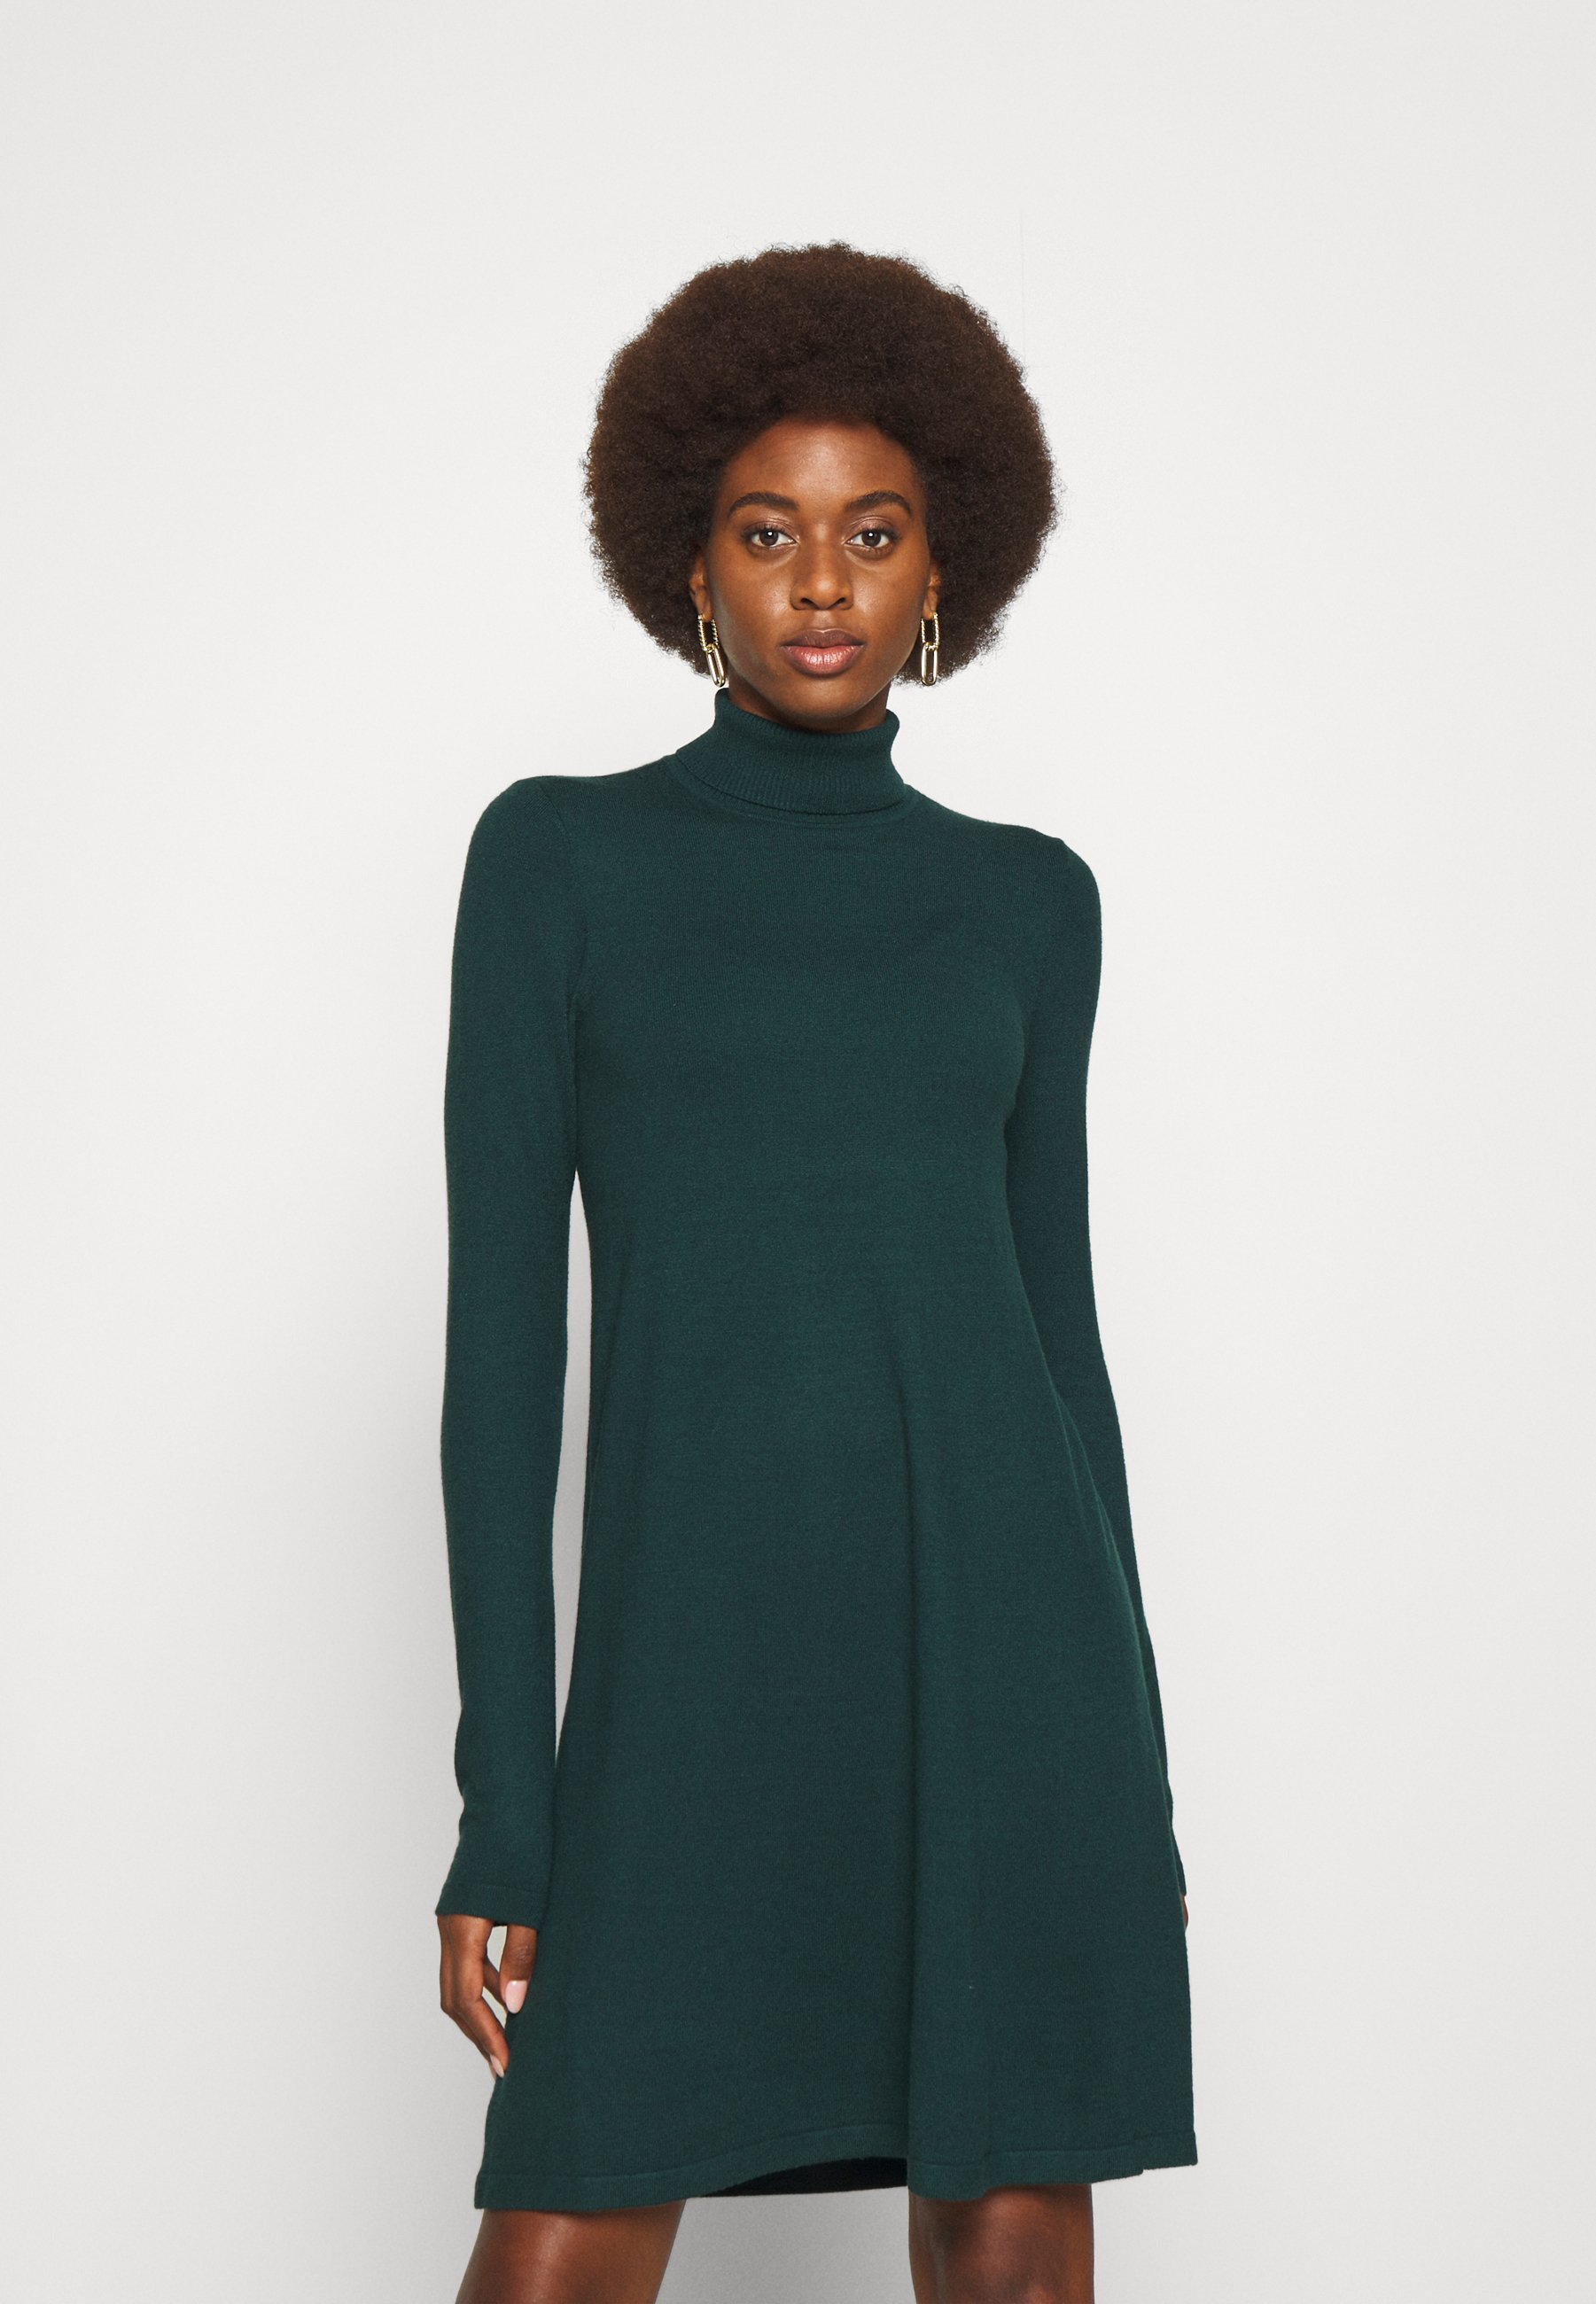 Donna VMHAPPINESS ROLLNECK DRESS - Abito in maglia